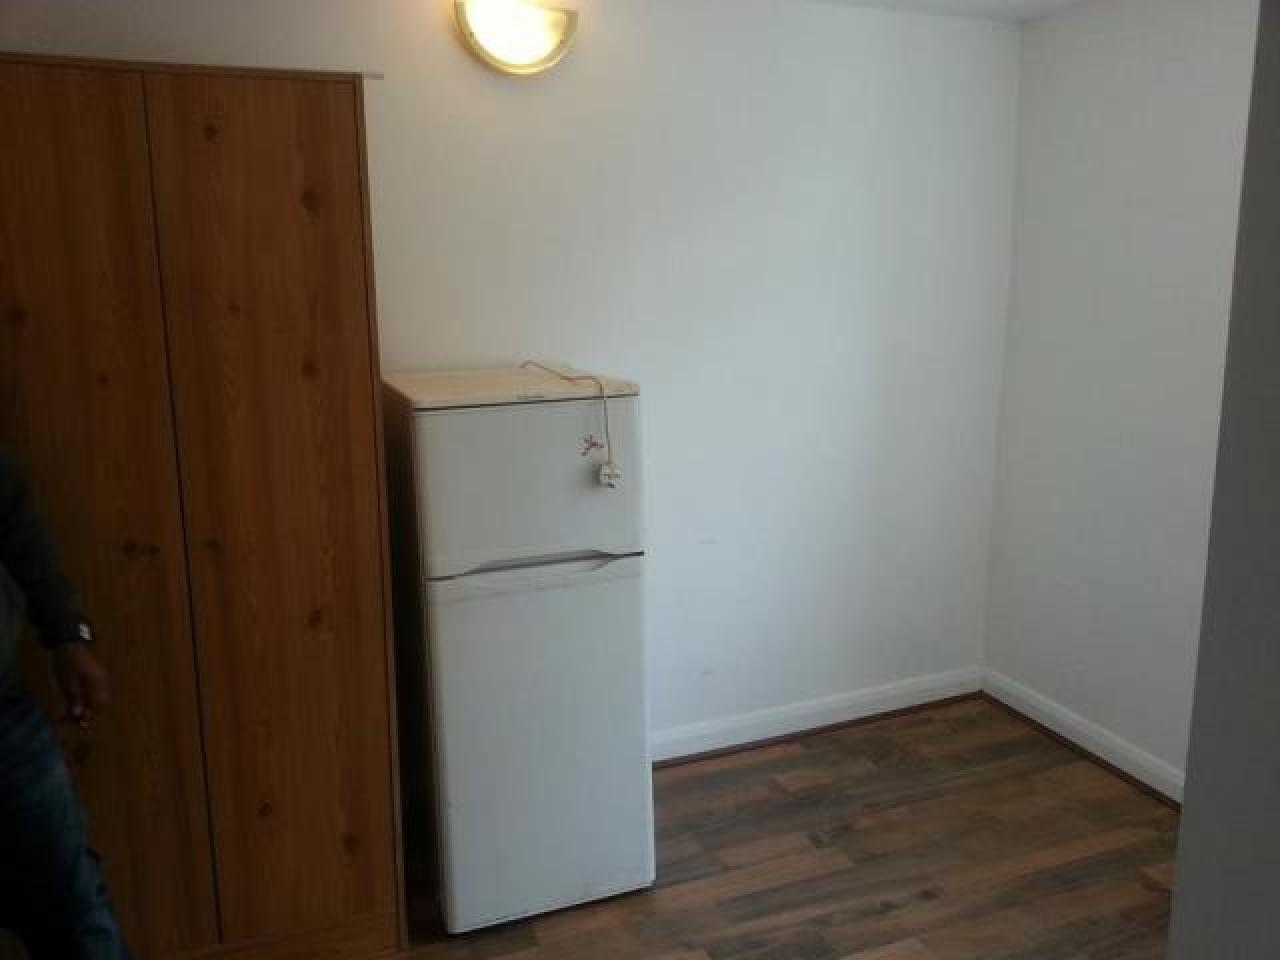 6 Studio Flats, Aldsworth Rd, Stratford, E15 1 000 £ — Available 20th July - 3